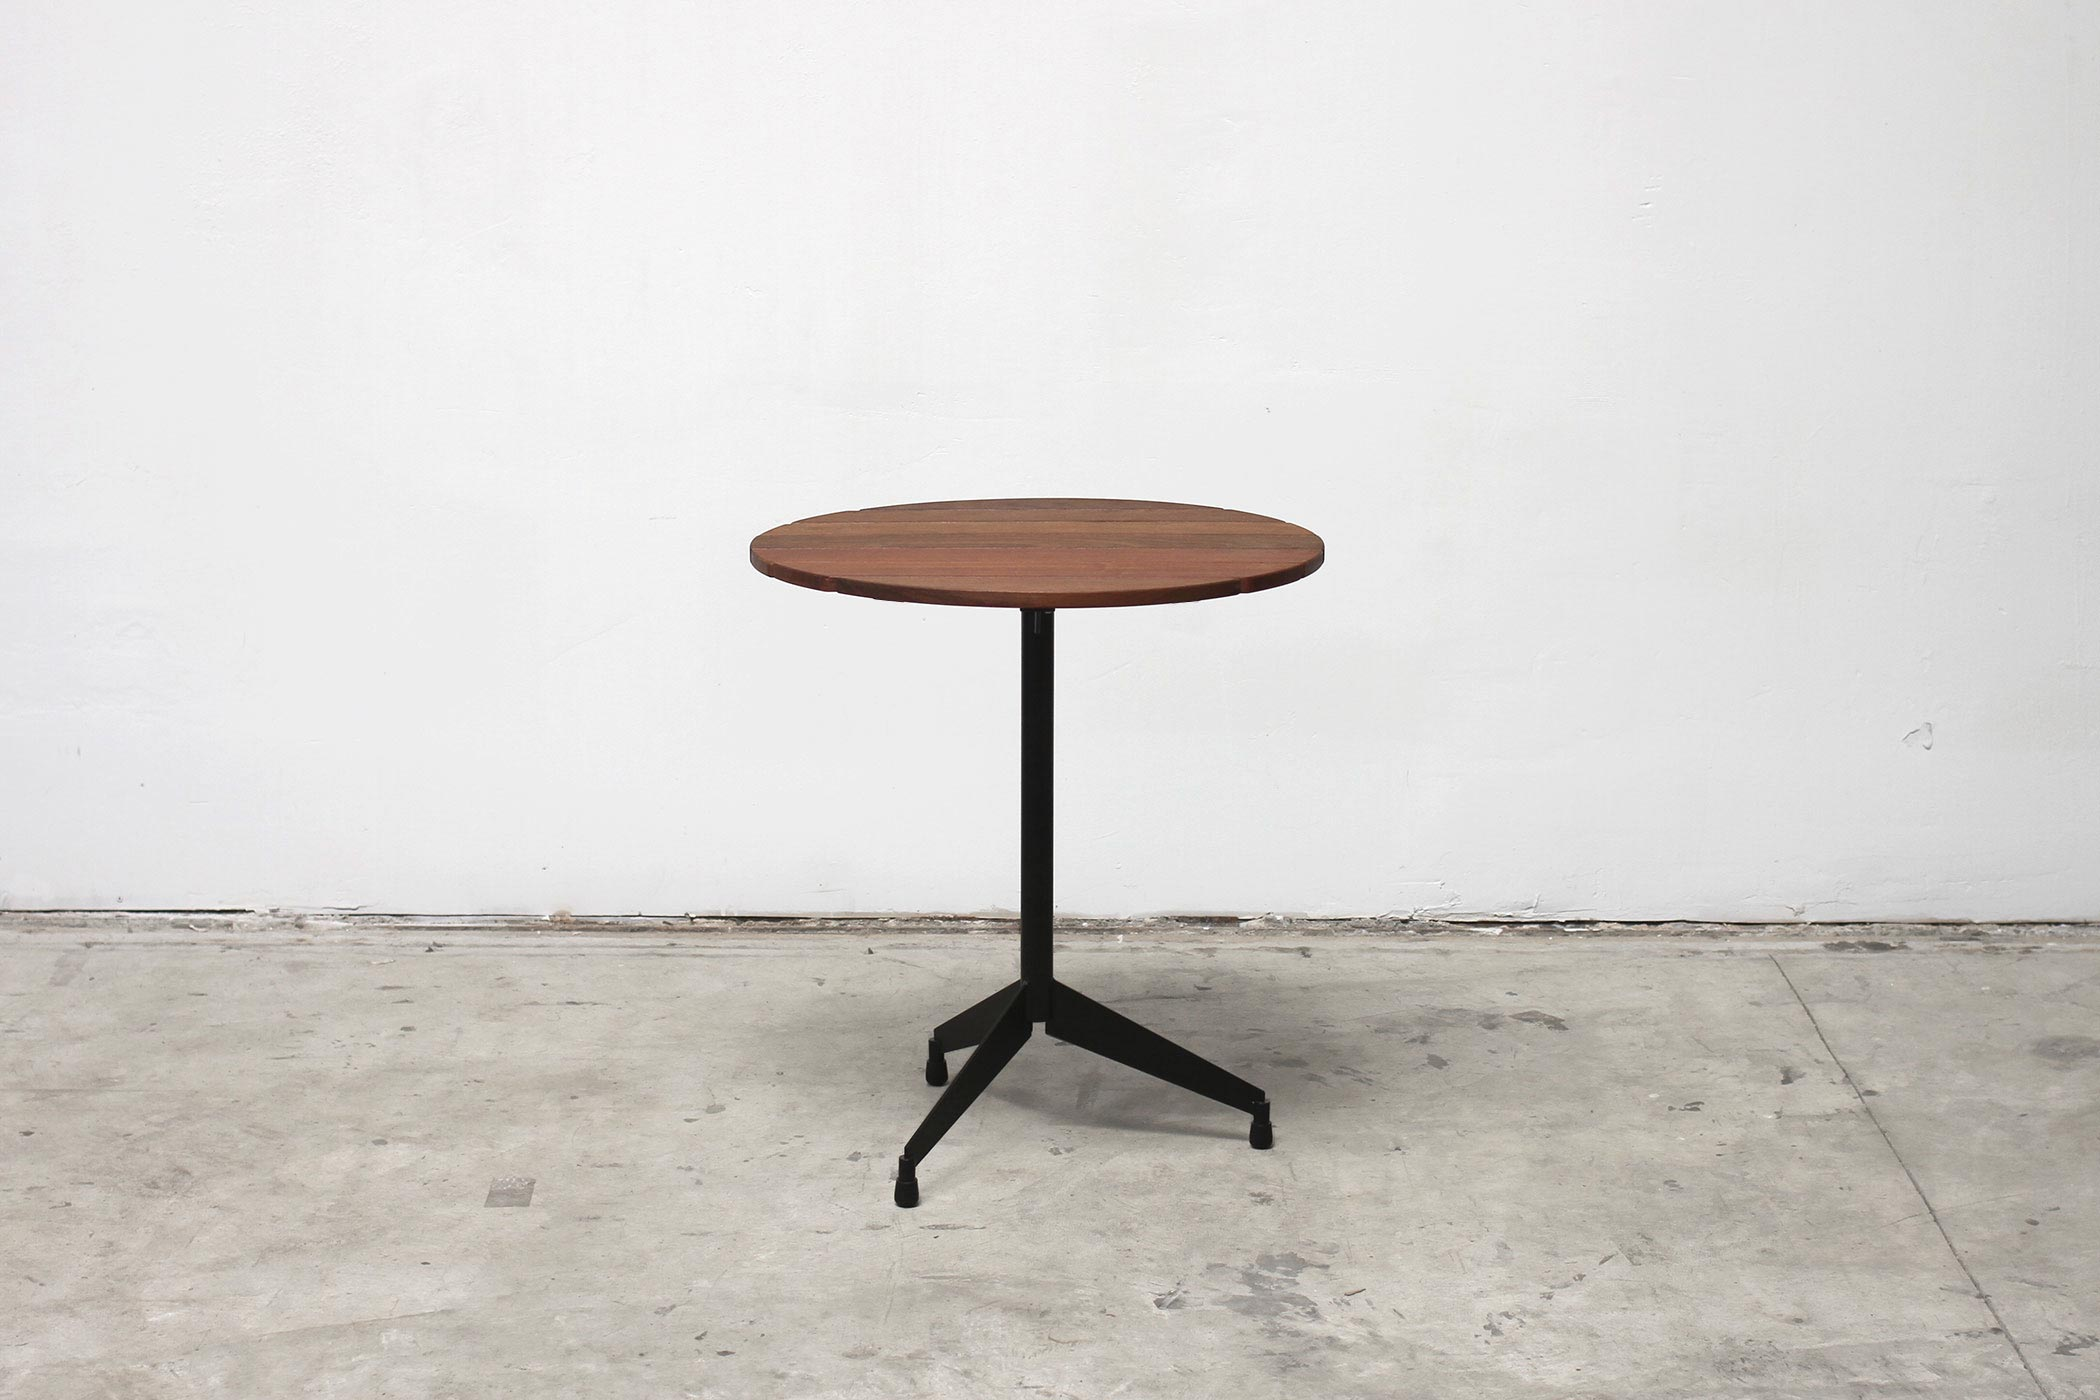 RAD Furniture's Slatted Wood Round Cafe Table